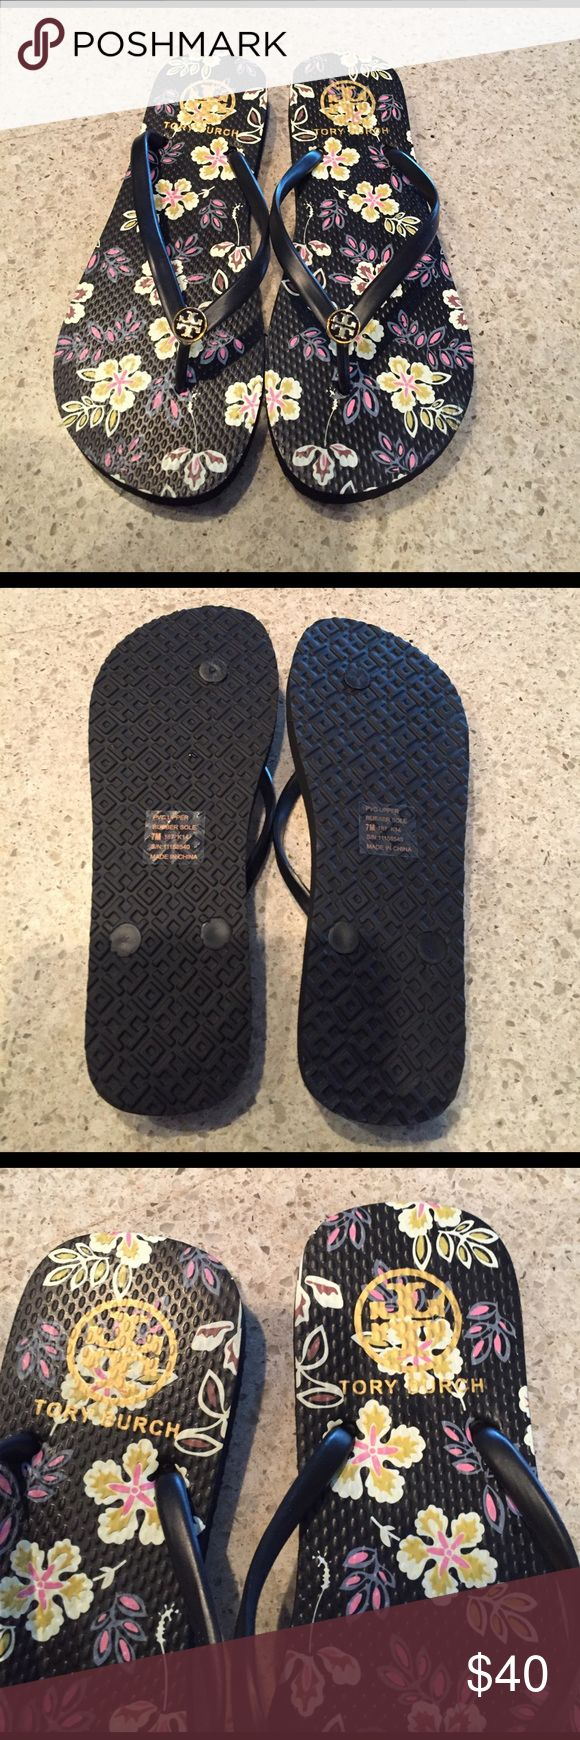 BRAND NEW TORY BURCH FLIP FLOPS  Brand new, never worn Tory Burch floral flip flops! Very pretty floral design. No box Tory Burch Shoes Sandals